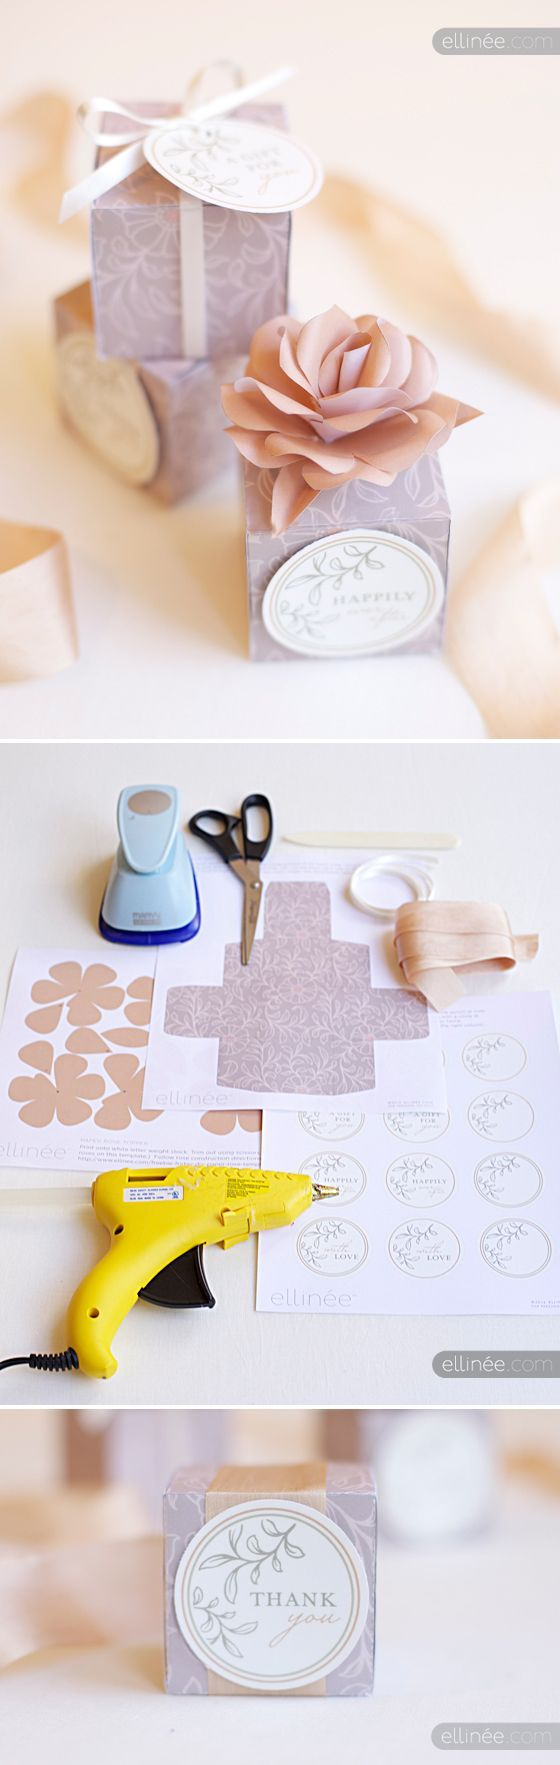 For A Patterned Gift Box Rose Topper And Lovely Round Tags From Ellinée Http Www Ellinee Blog Freebie Friday Diy Wedding Favor